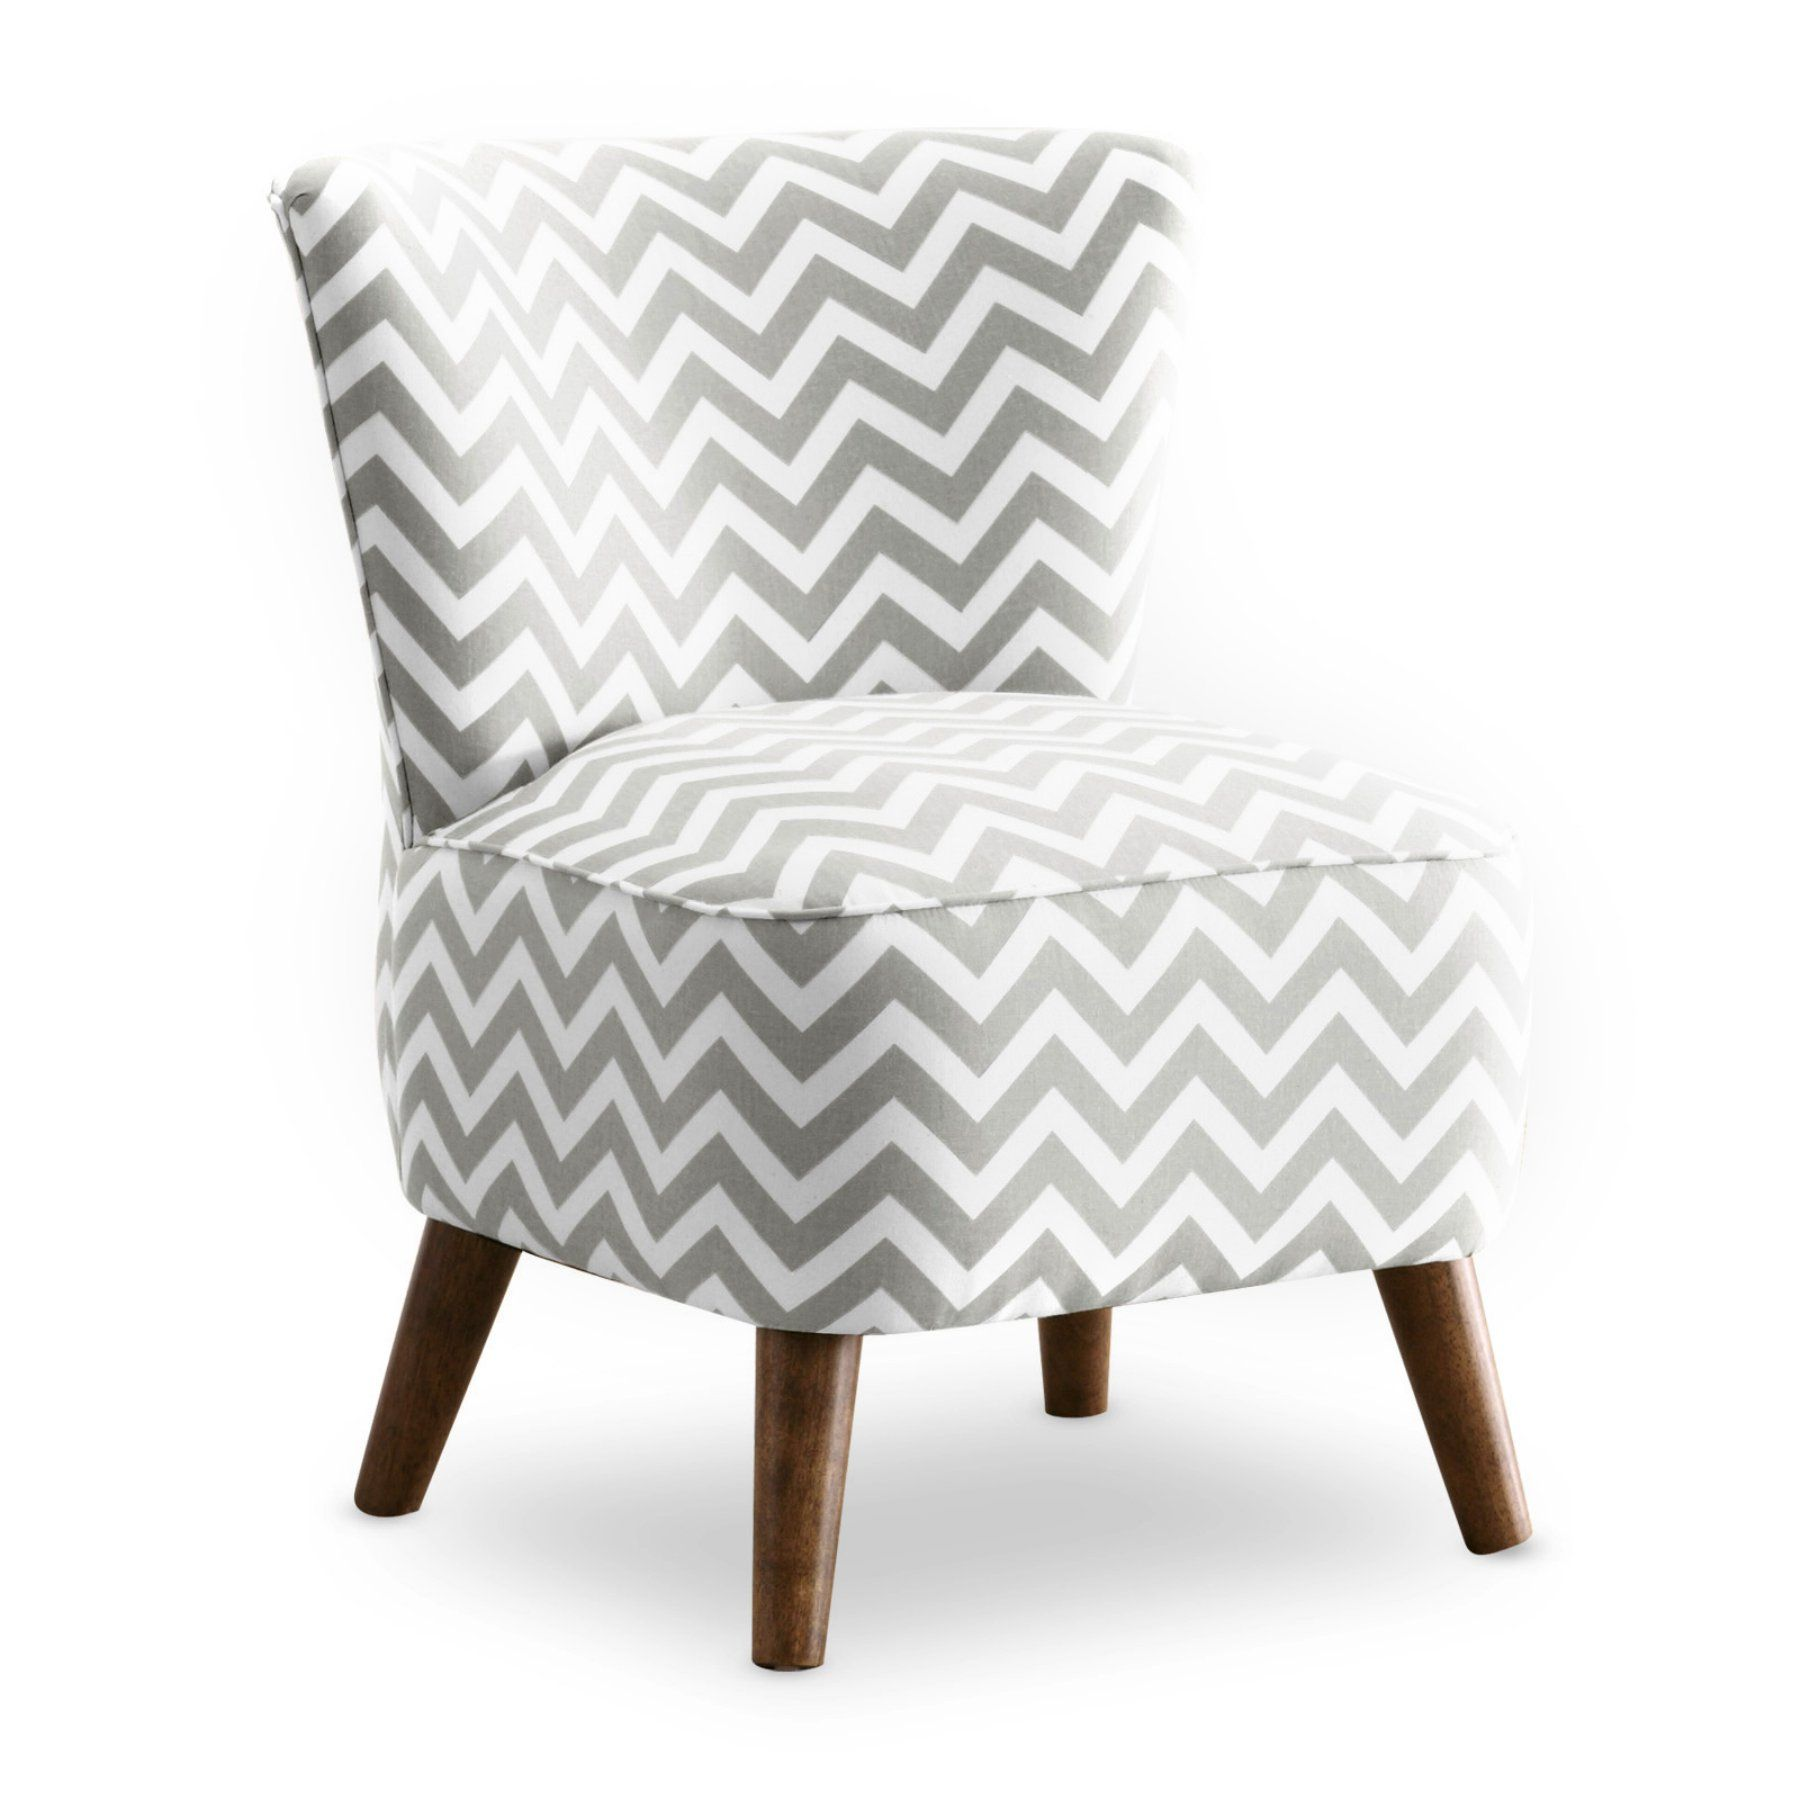 MCM Chair - Zig Zag Grey And White In 2019